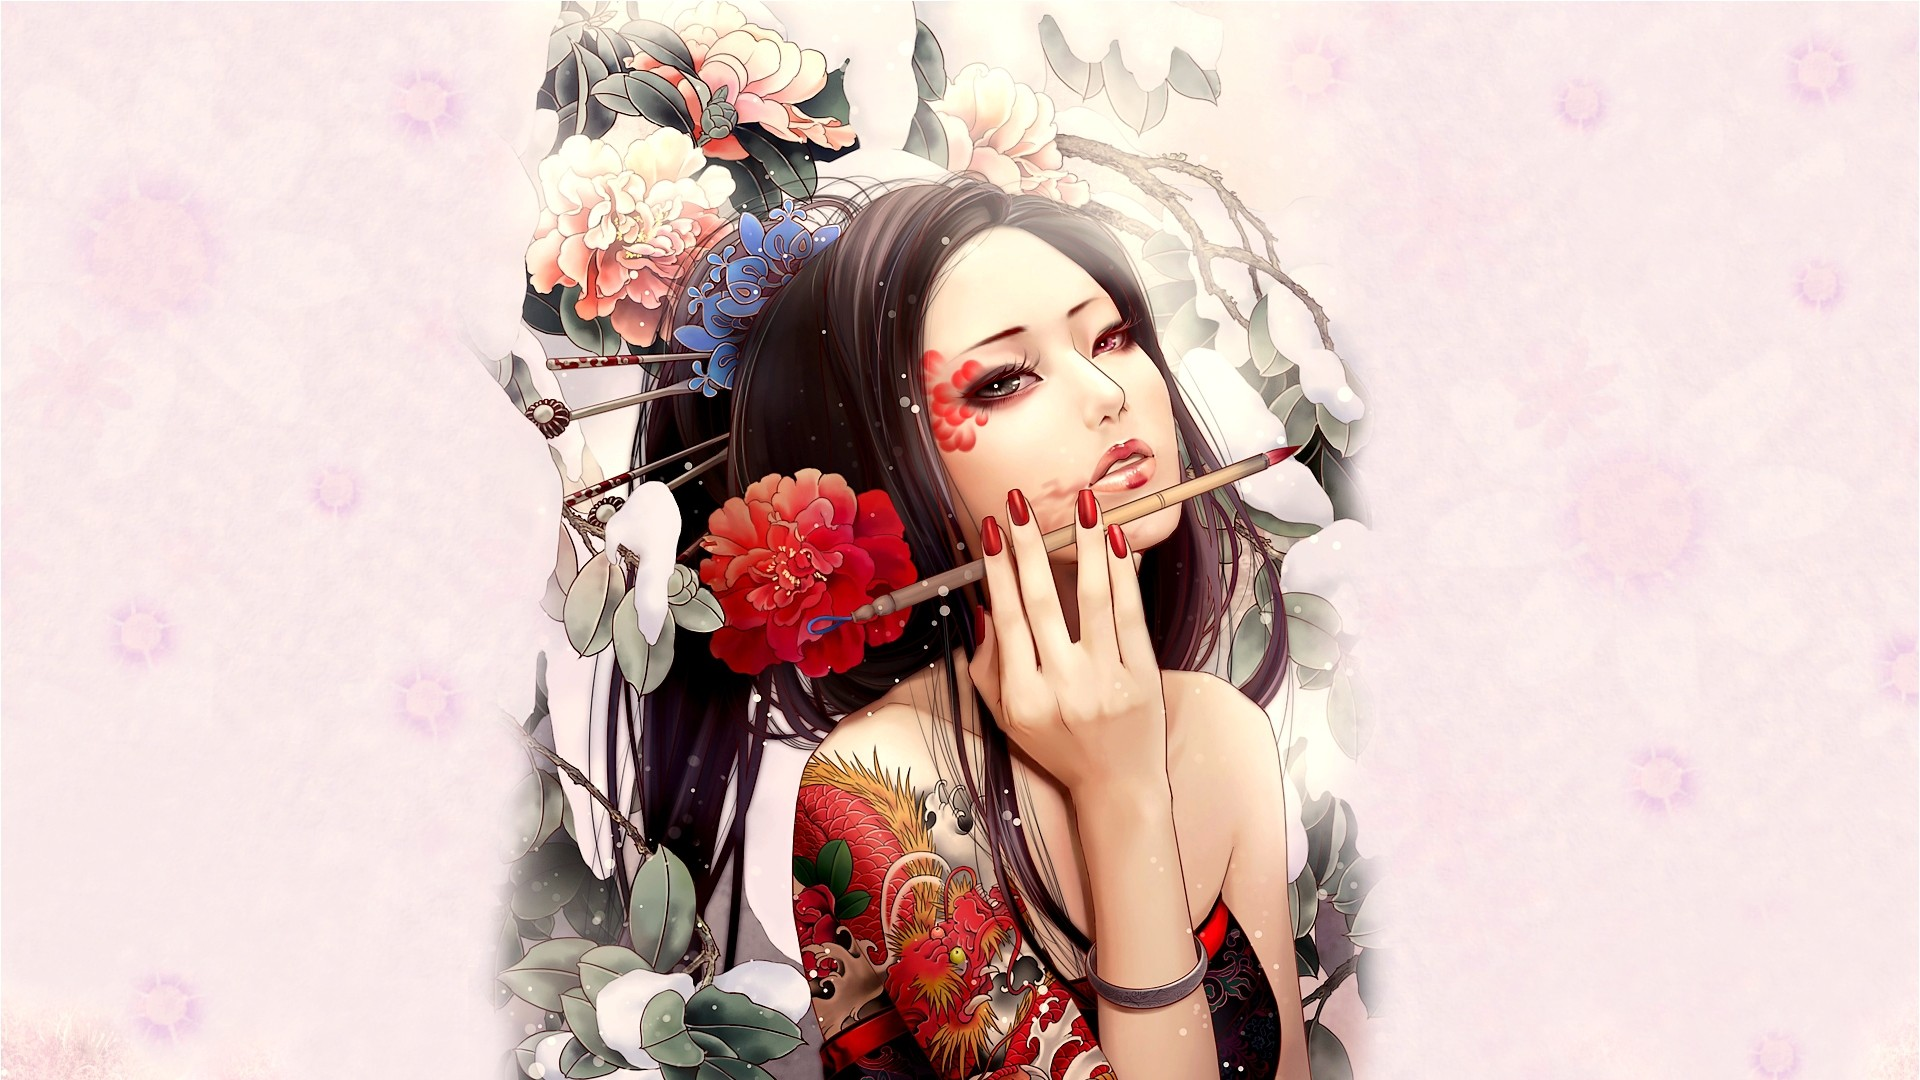 Hd wallpaper tattoo - Tattoos Wallpapers Background